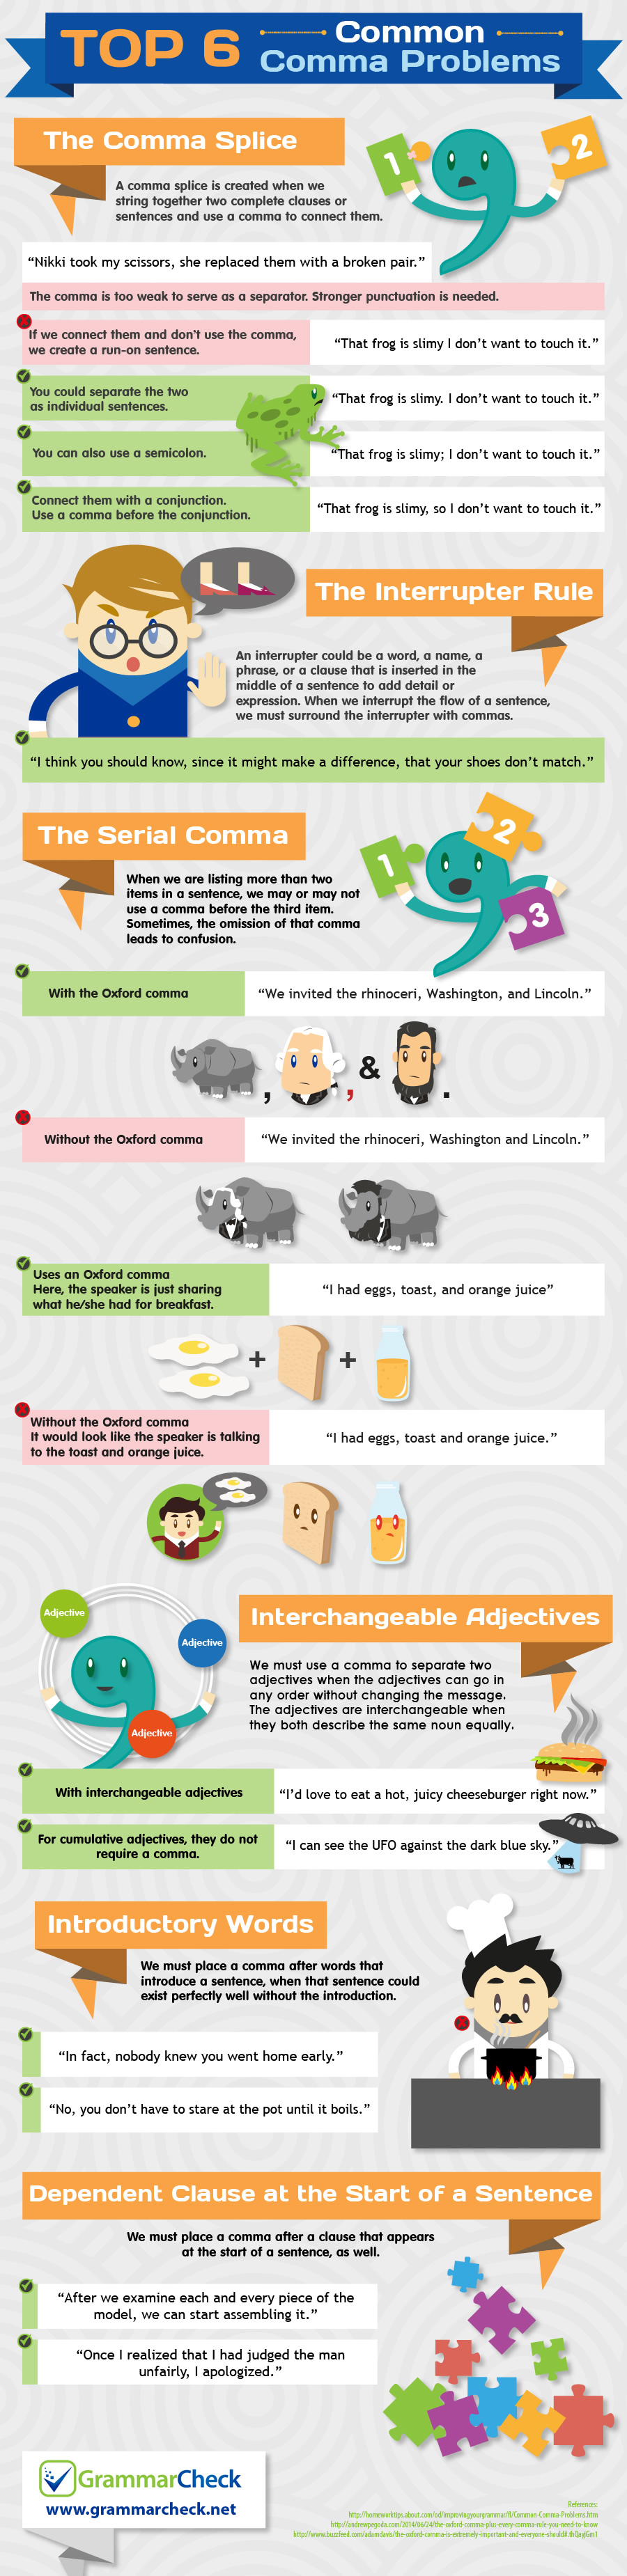 Top 6 Common Comma Problems (Infographic)